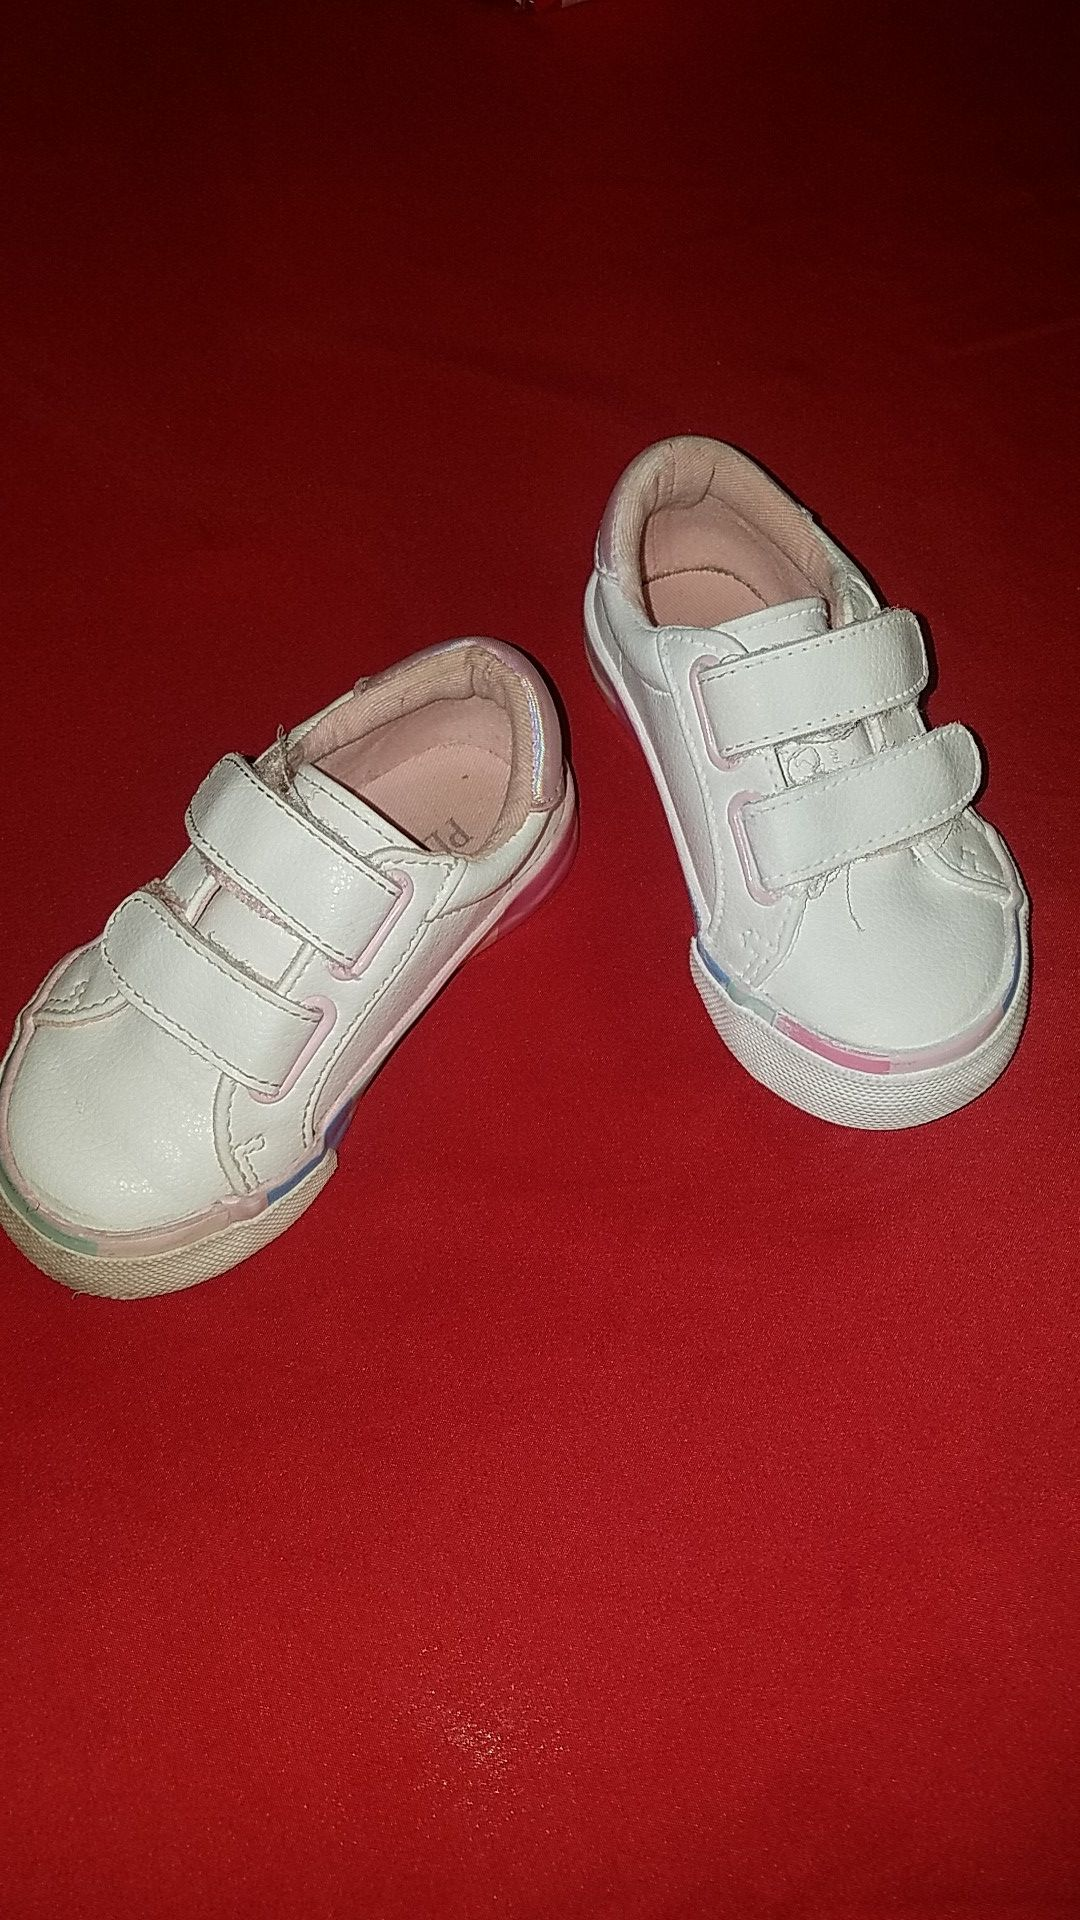 Pointed toe white pleather sneakers size 6